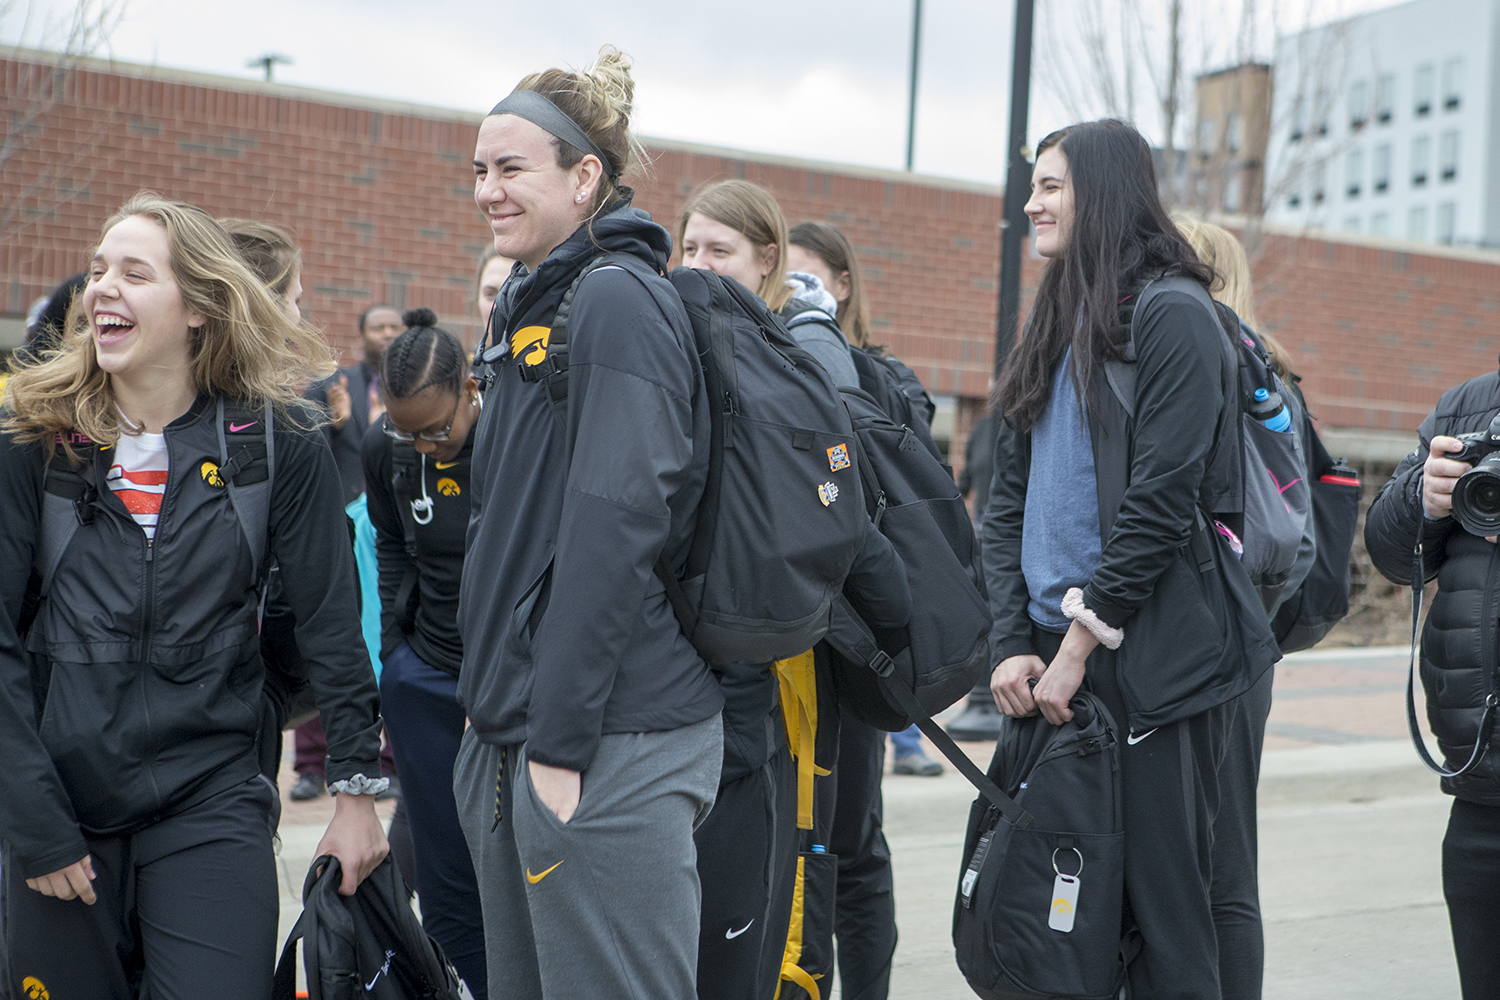 Teammates laugh as others depart the bus at the Transit Center on April 2, 2019.